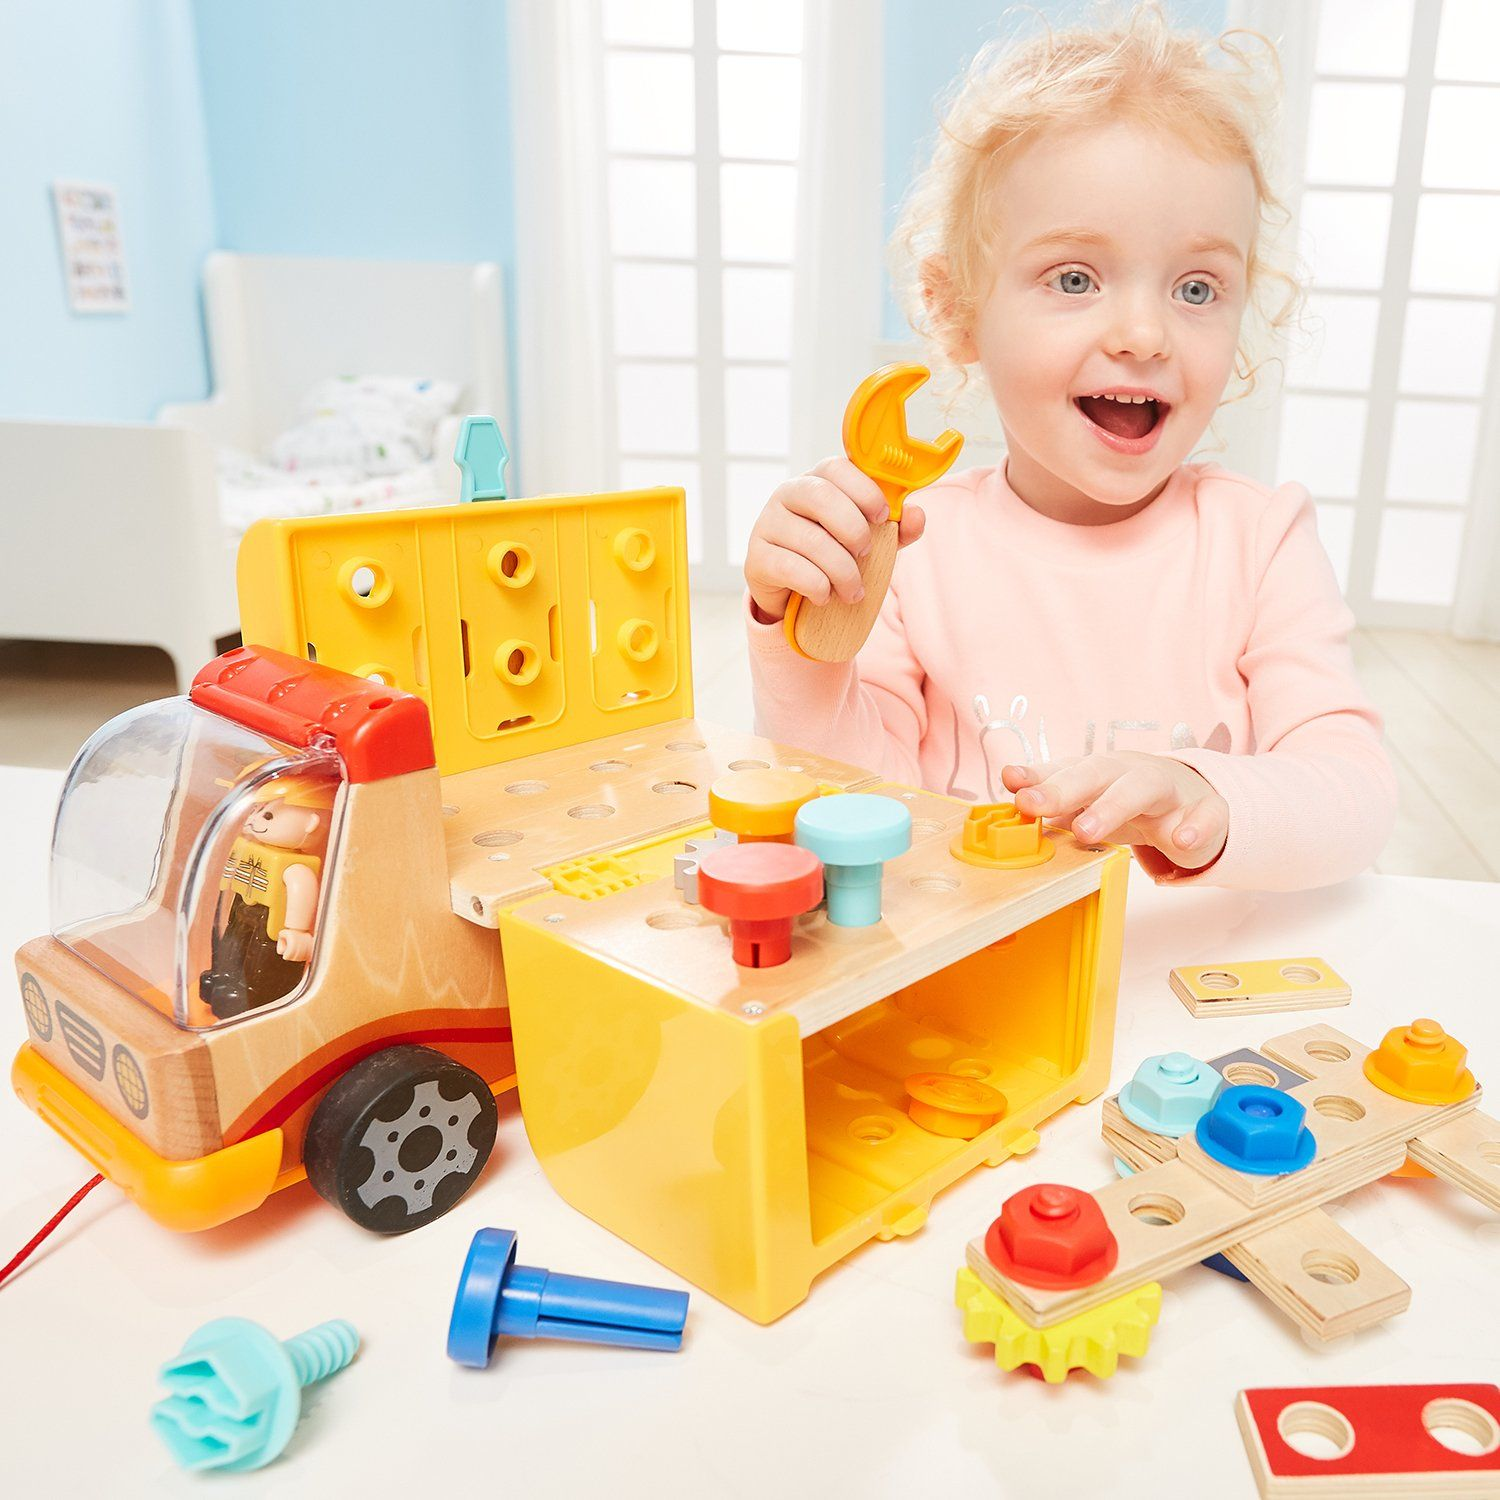 TOP BRIGHT Toddler Toys Tool Set For 2 3 Year Old Boy ...